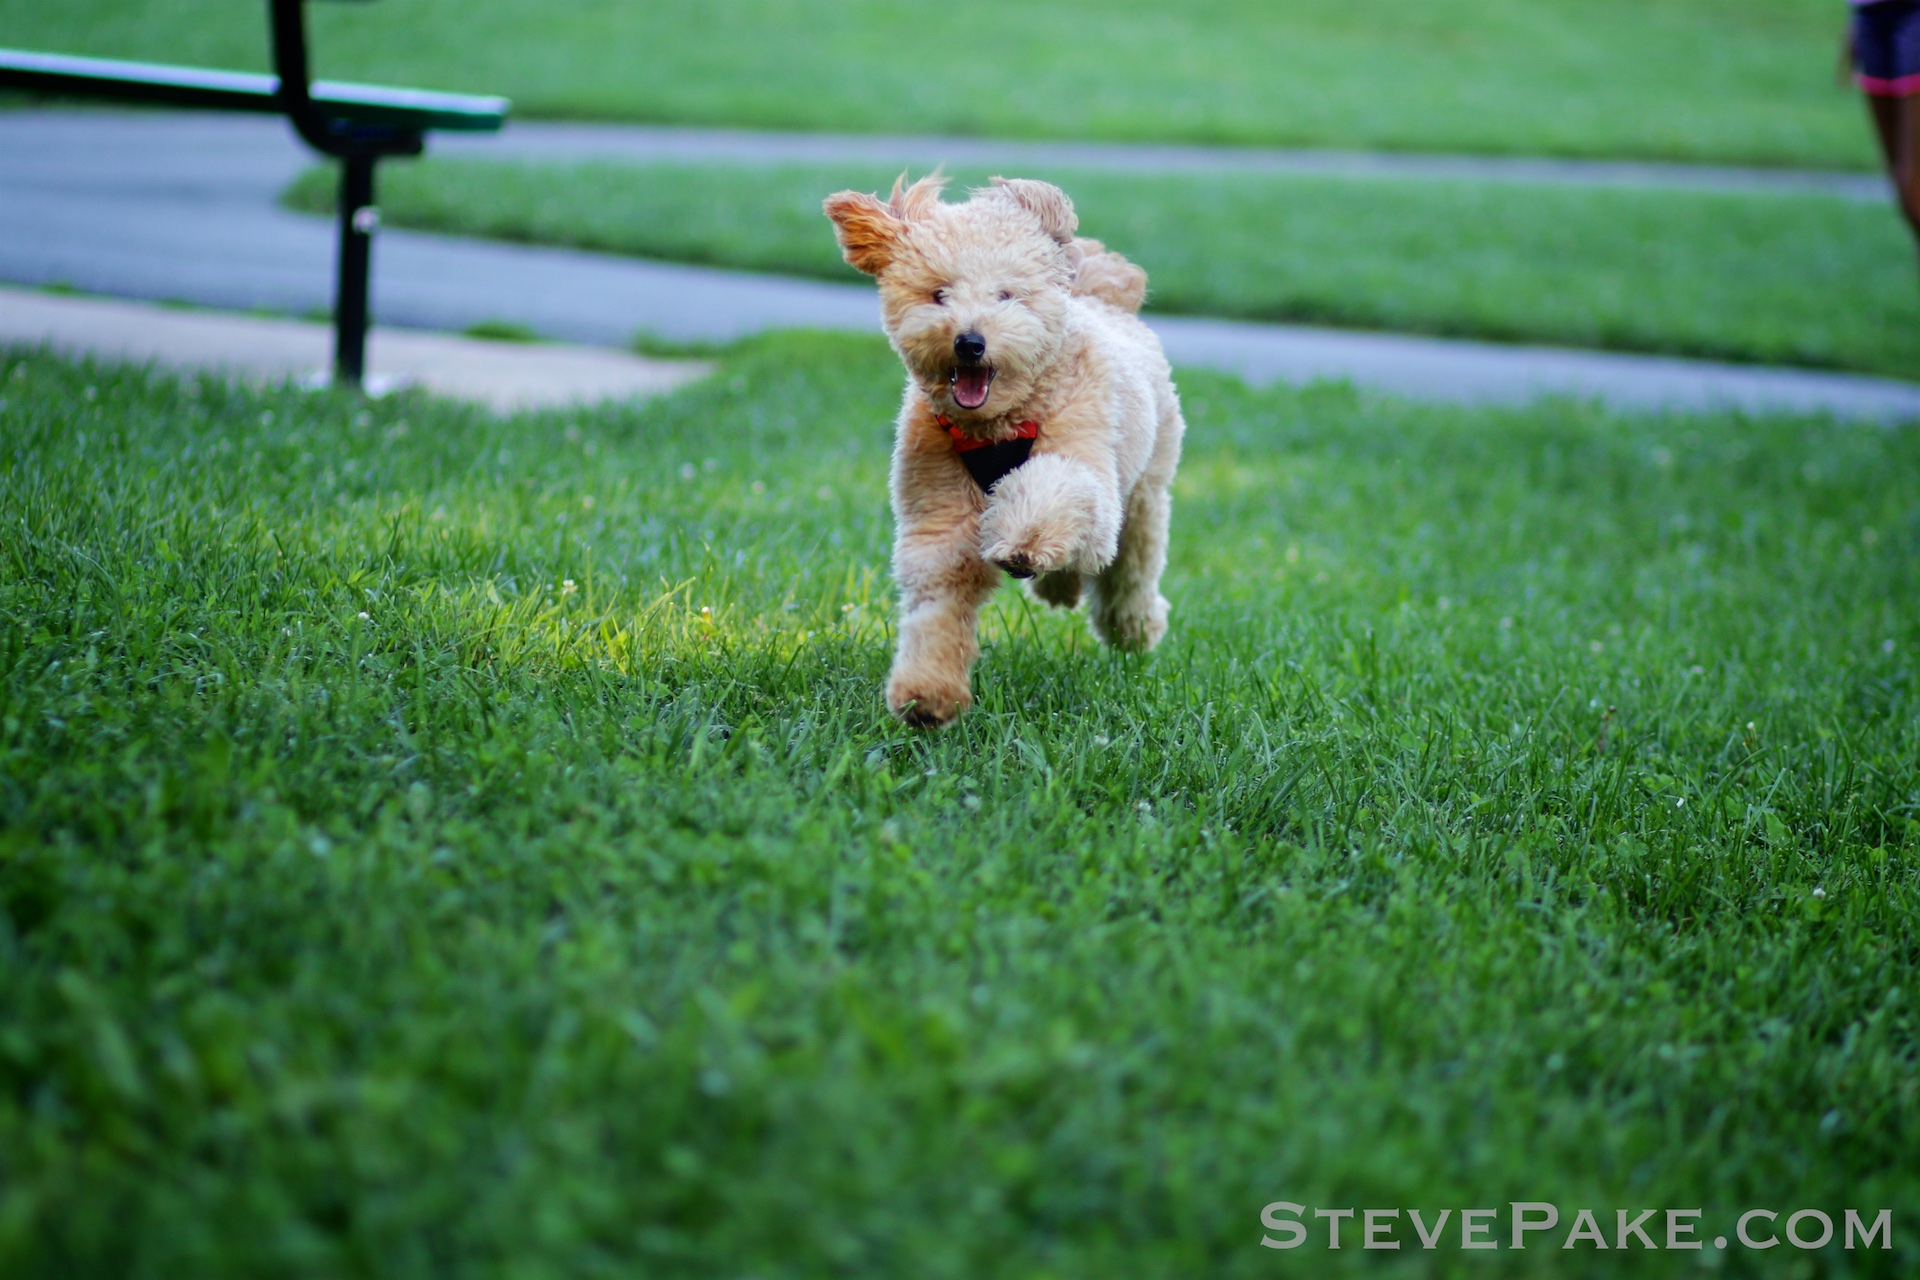 There's nothing cuter than this little fur ball coming at you at full speed! :)